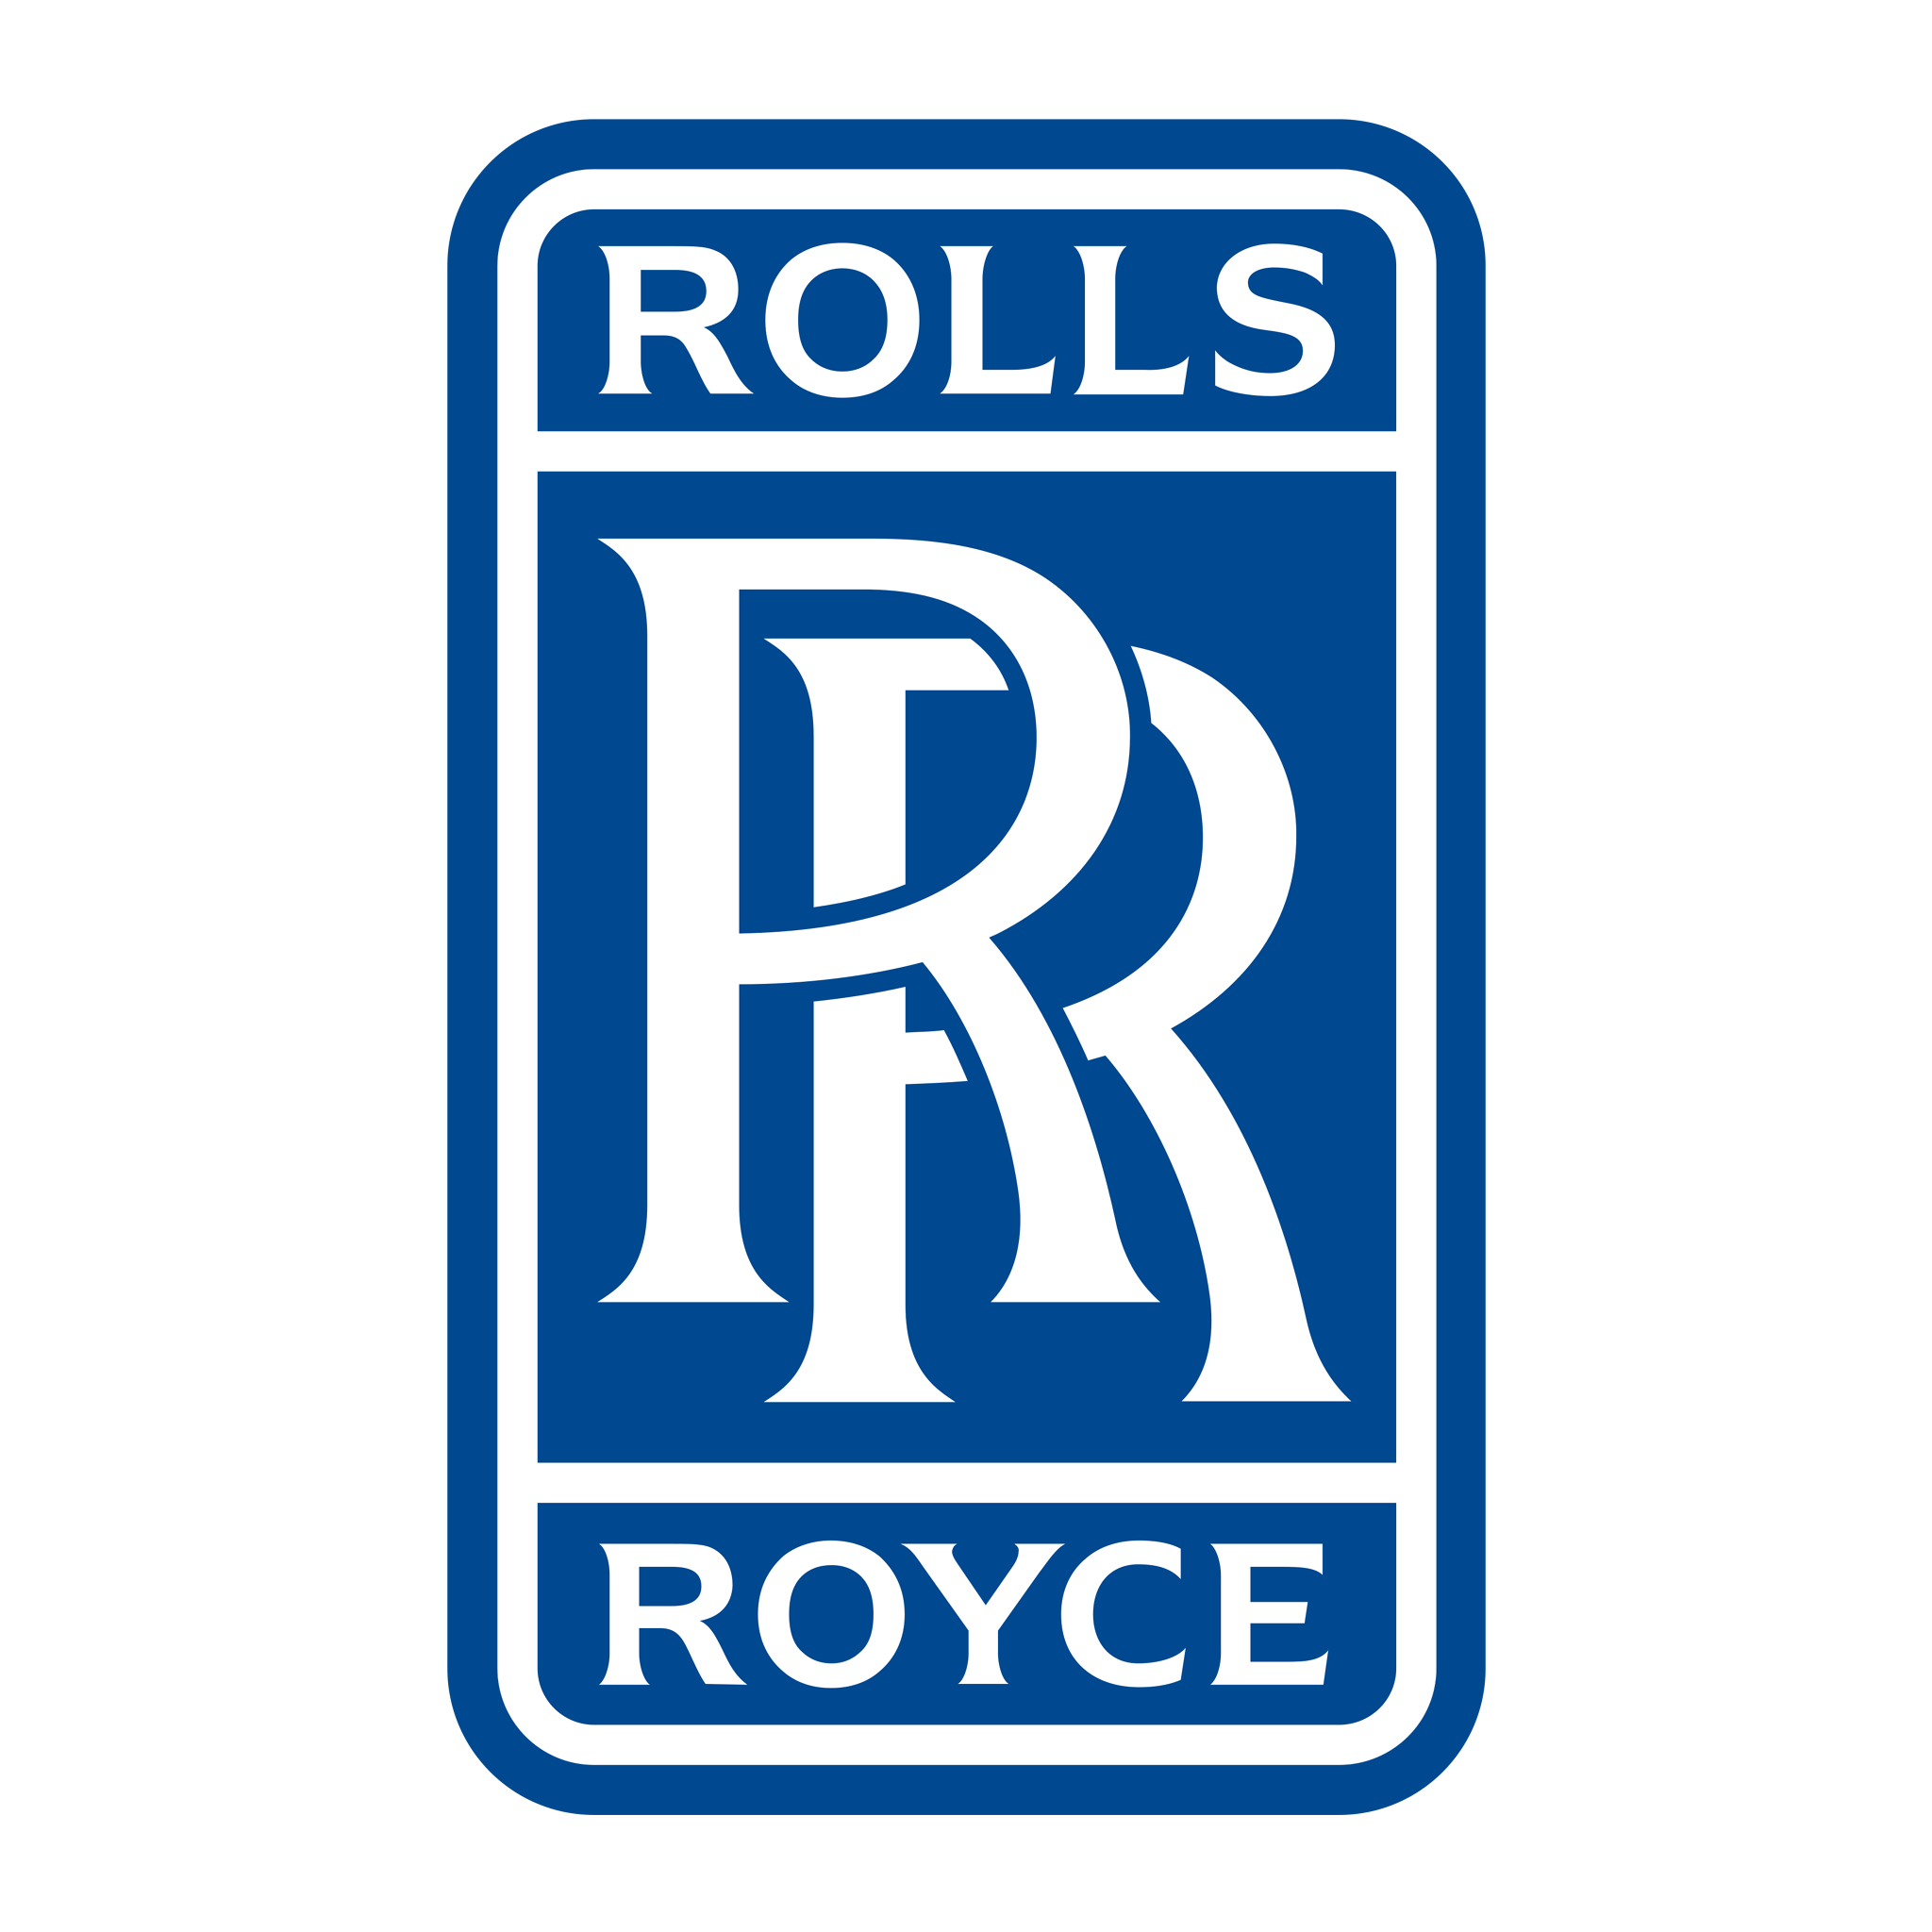 ROLL ROYCE